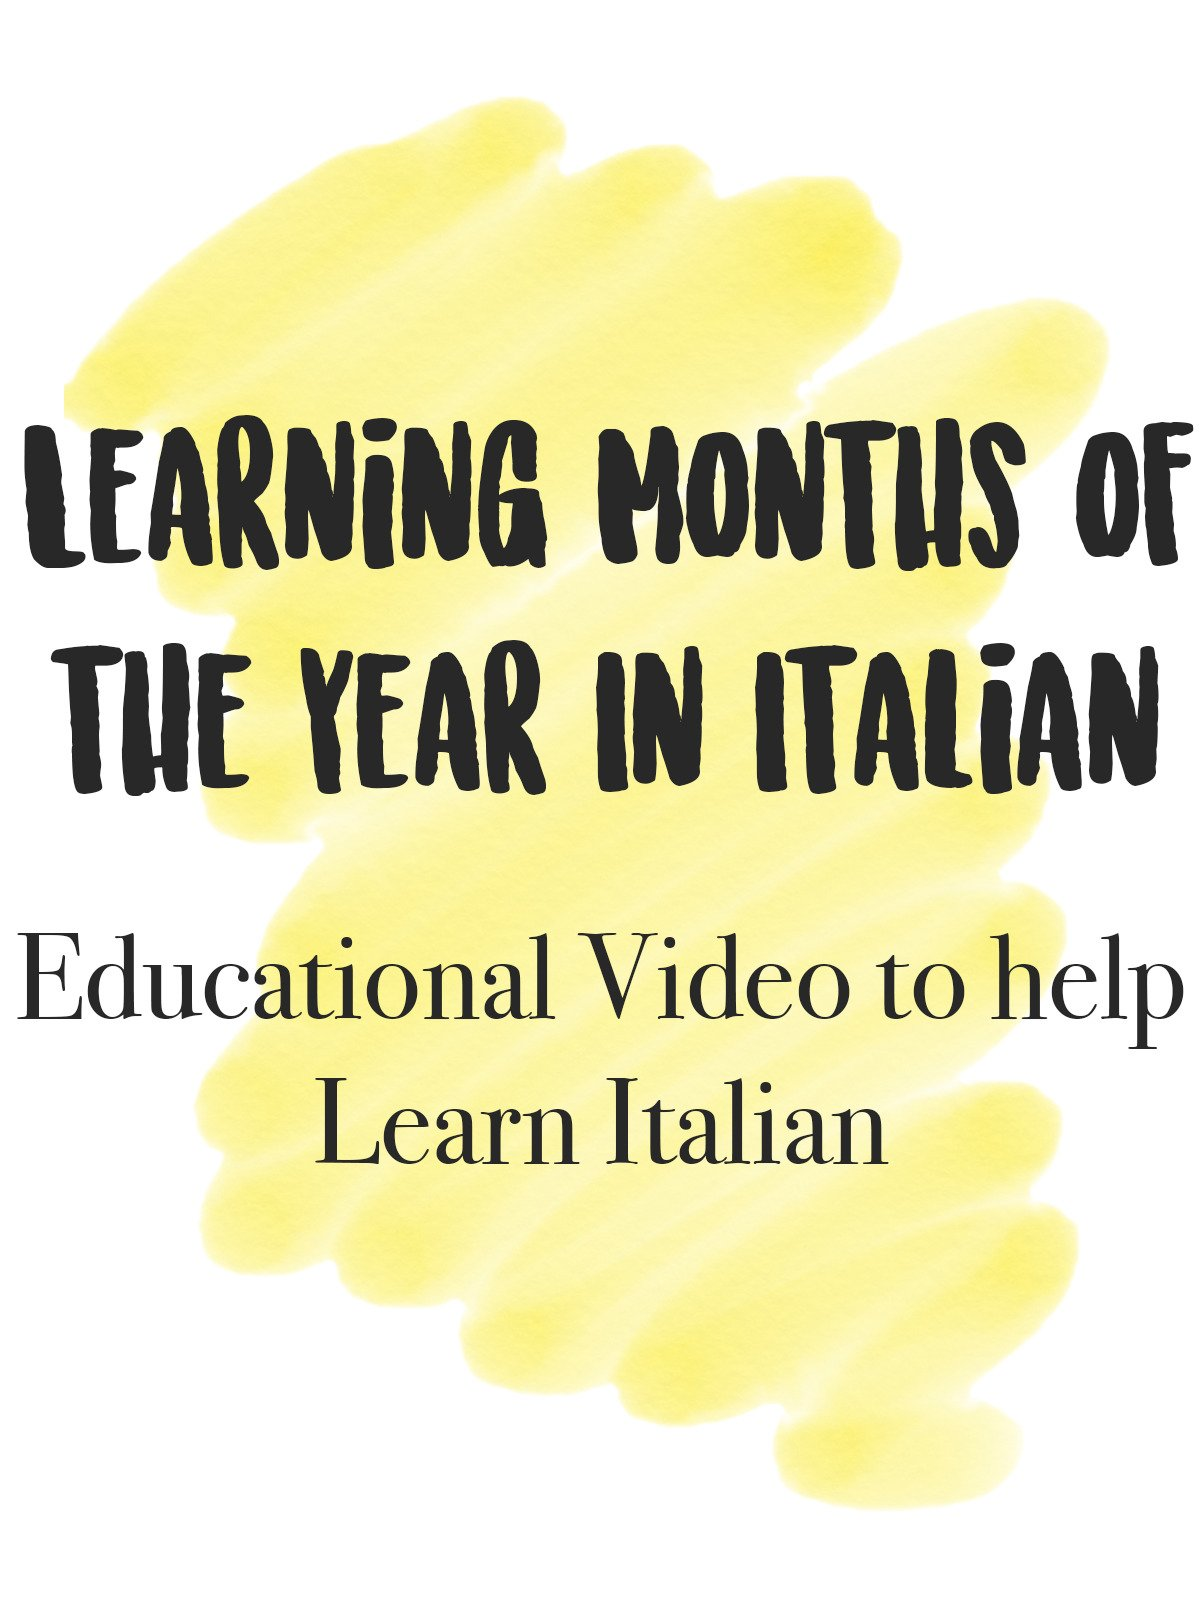 Learning Months of the Year in Italian Educational Video to help Learn Italian